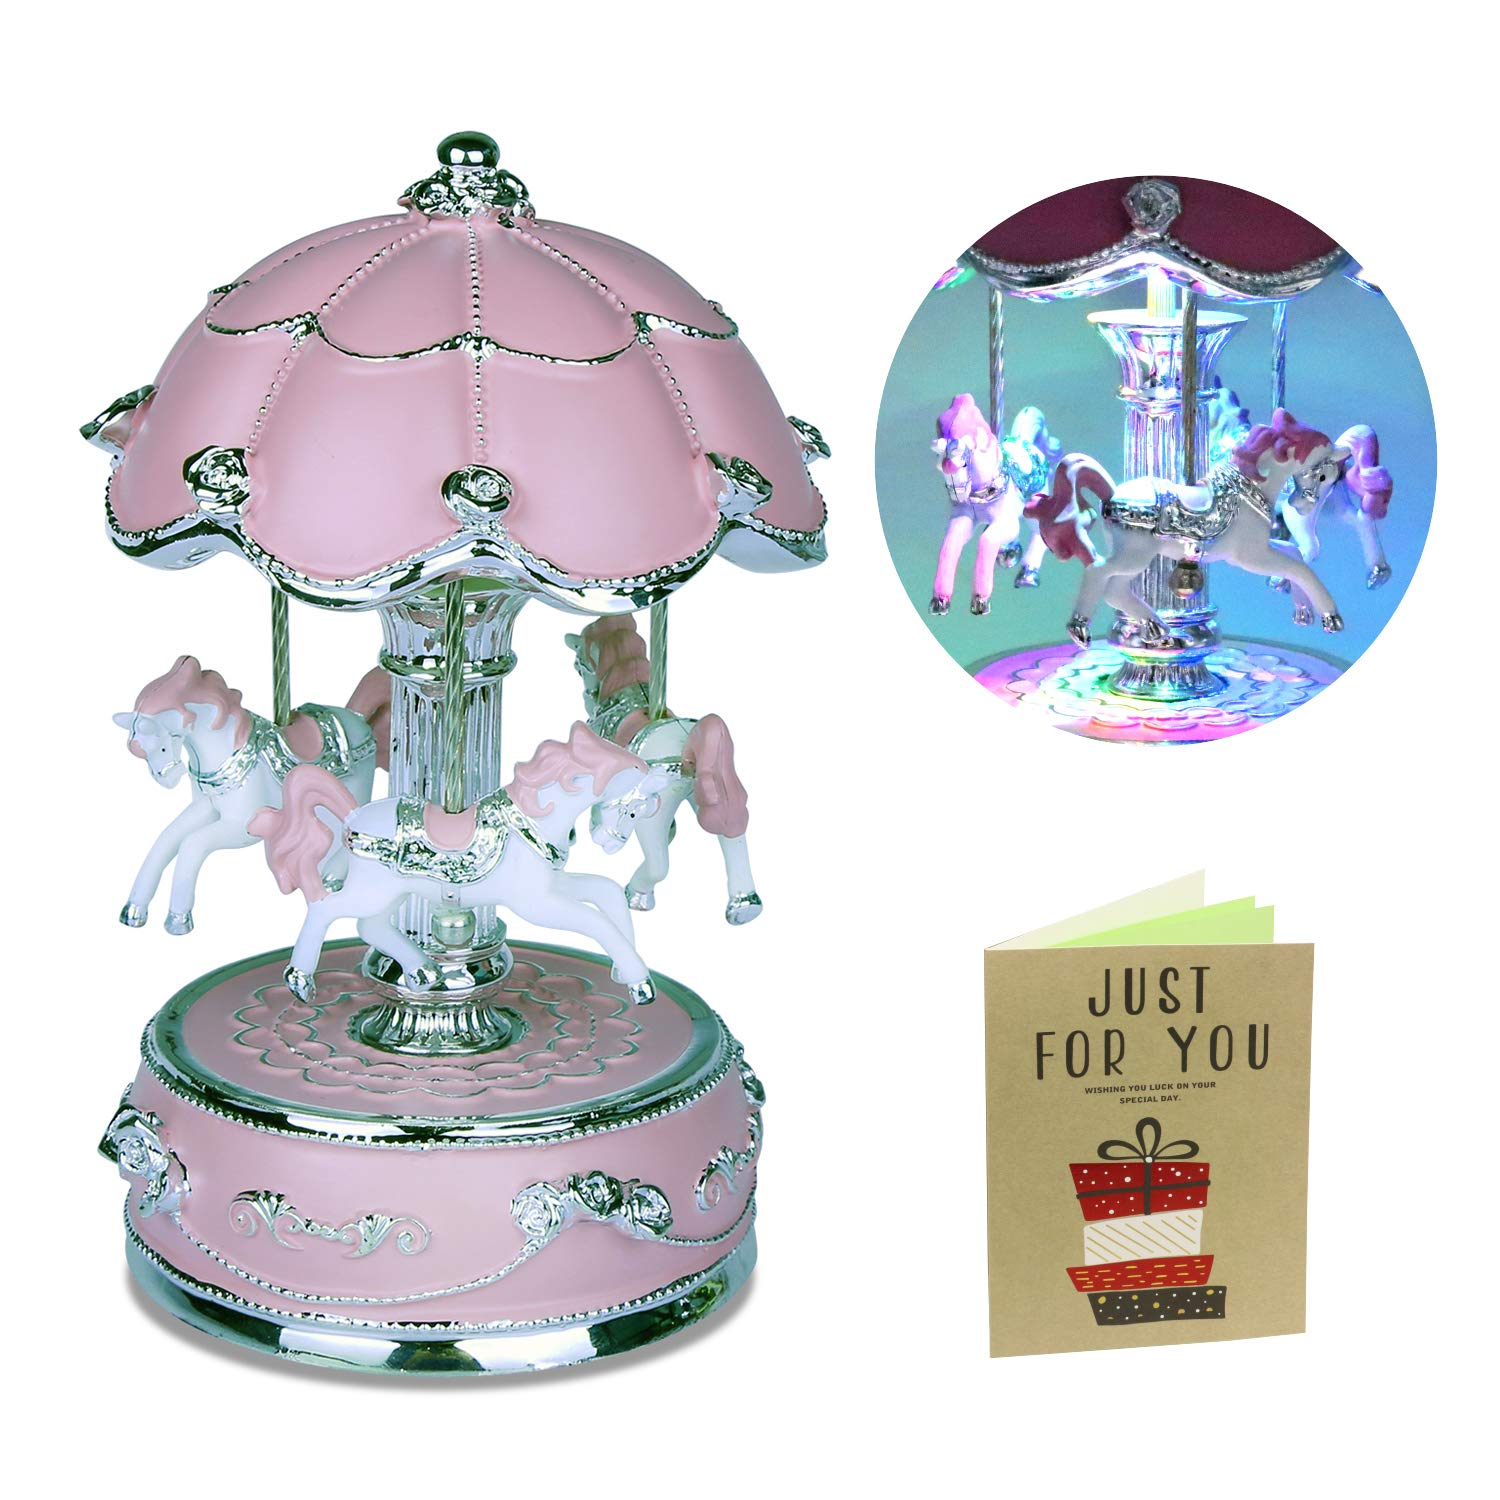 iGutech Carousel Music Box, Luxury Carousel Horse Music Boxes for Kids Girls (Pink)